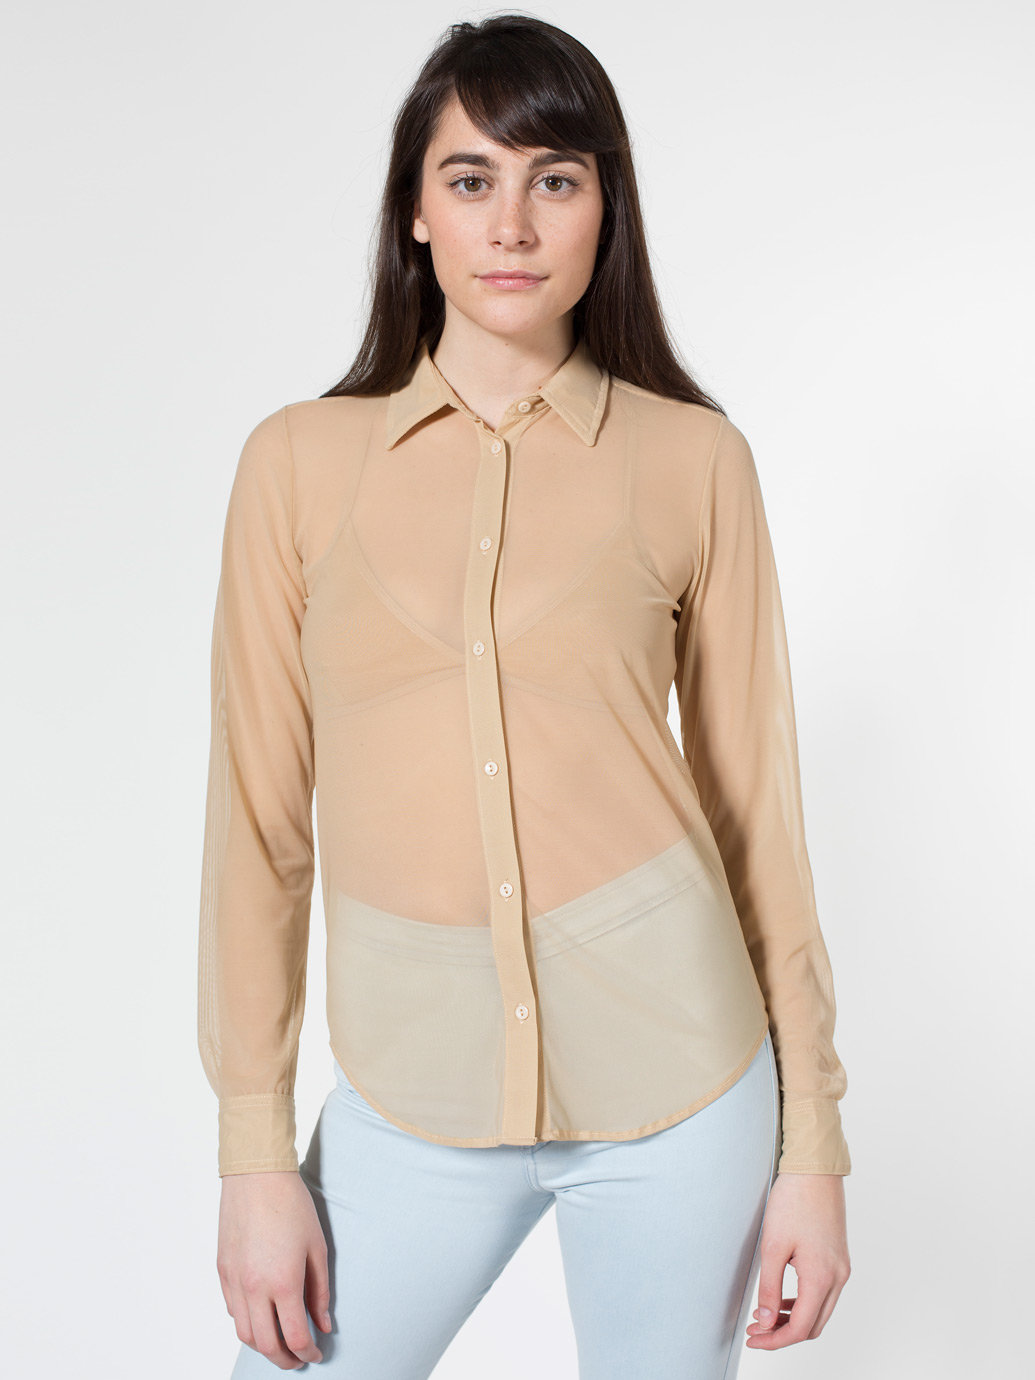 Nylon Spandex Micro-Mesh Long Sleeve Button-Up | American Apparel